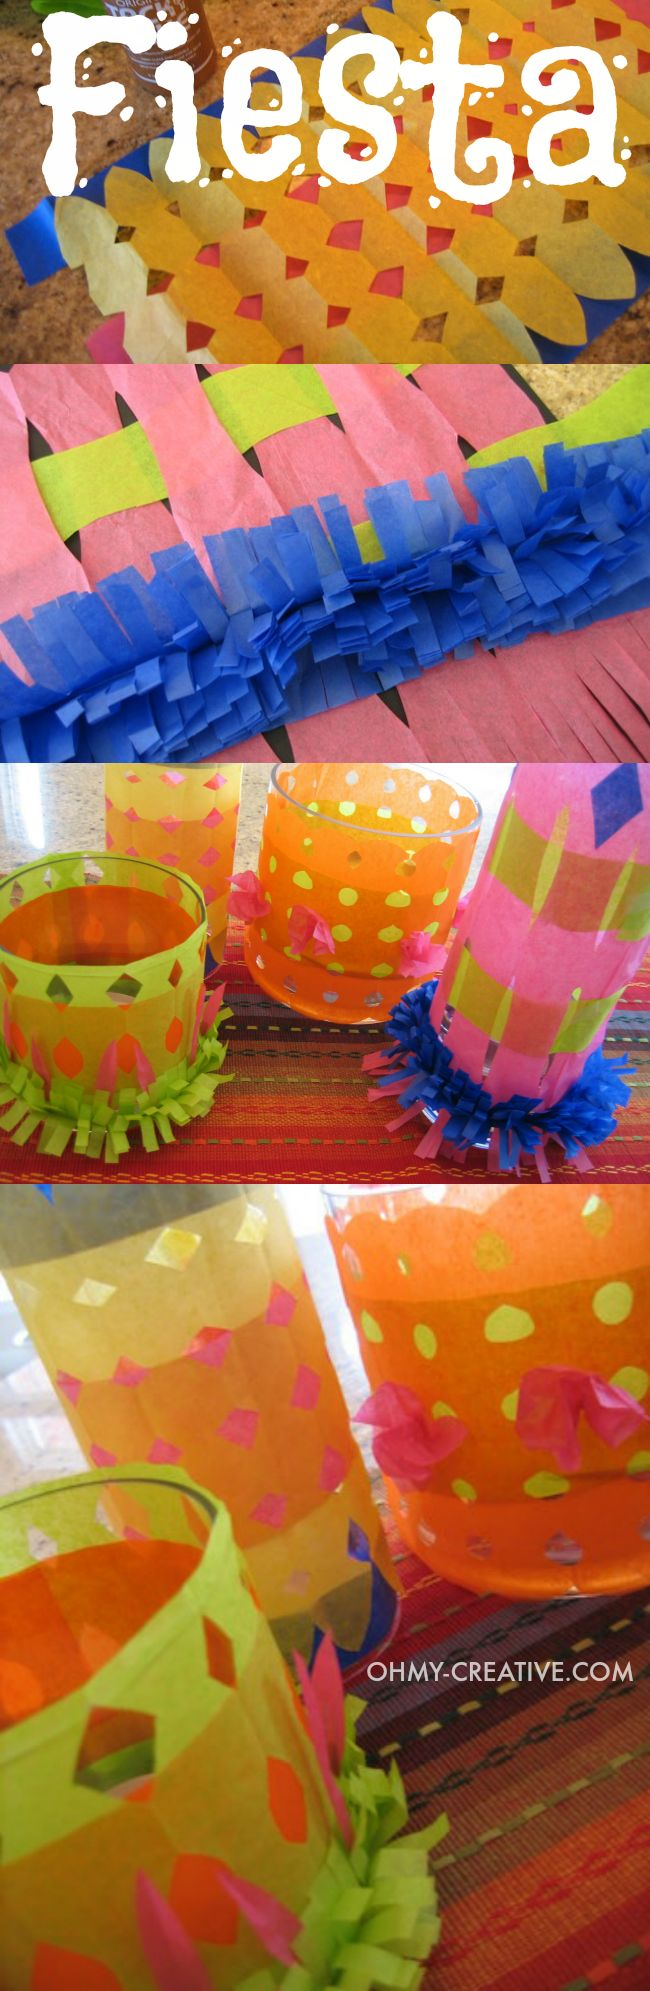 These Fiesta candle holders make a great centerpiece for Cinco de Mayo or a Mexican Fiesta. The are cheap to make using tissue paper and something fun for the kids to make     OHMY-CREATIVE.COM